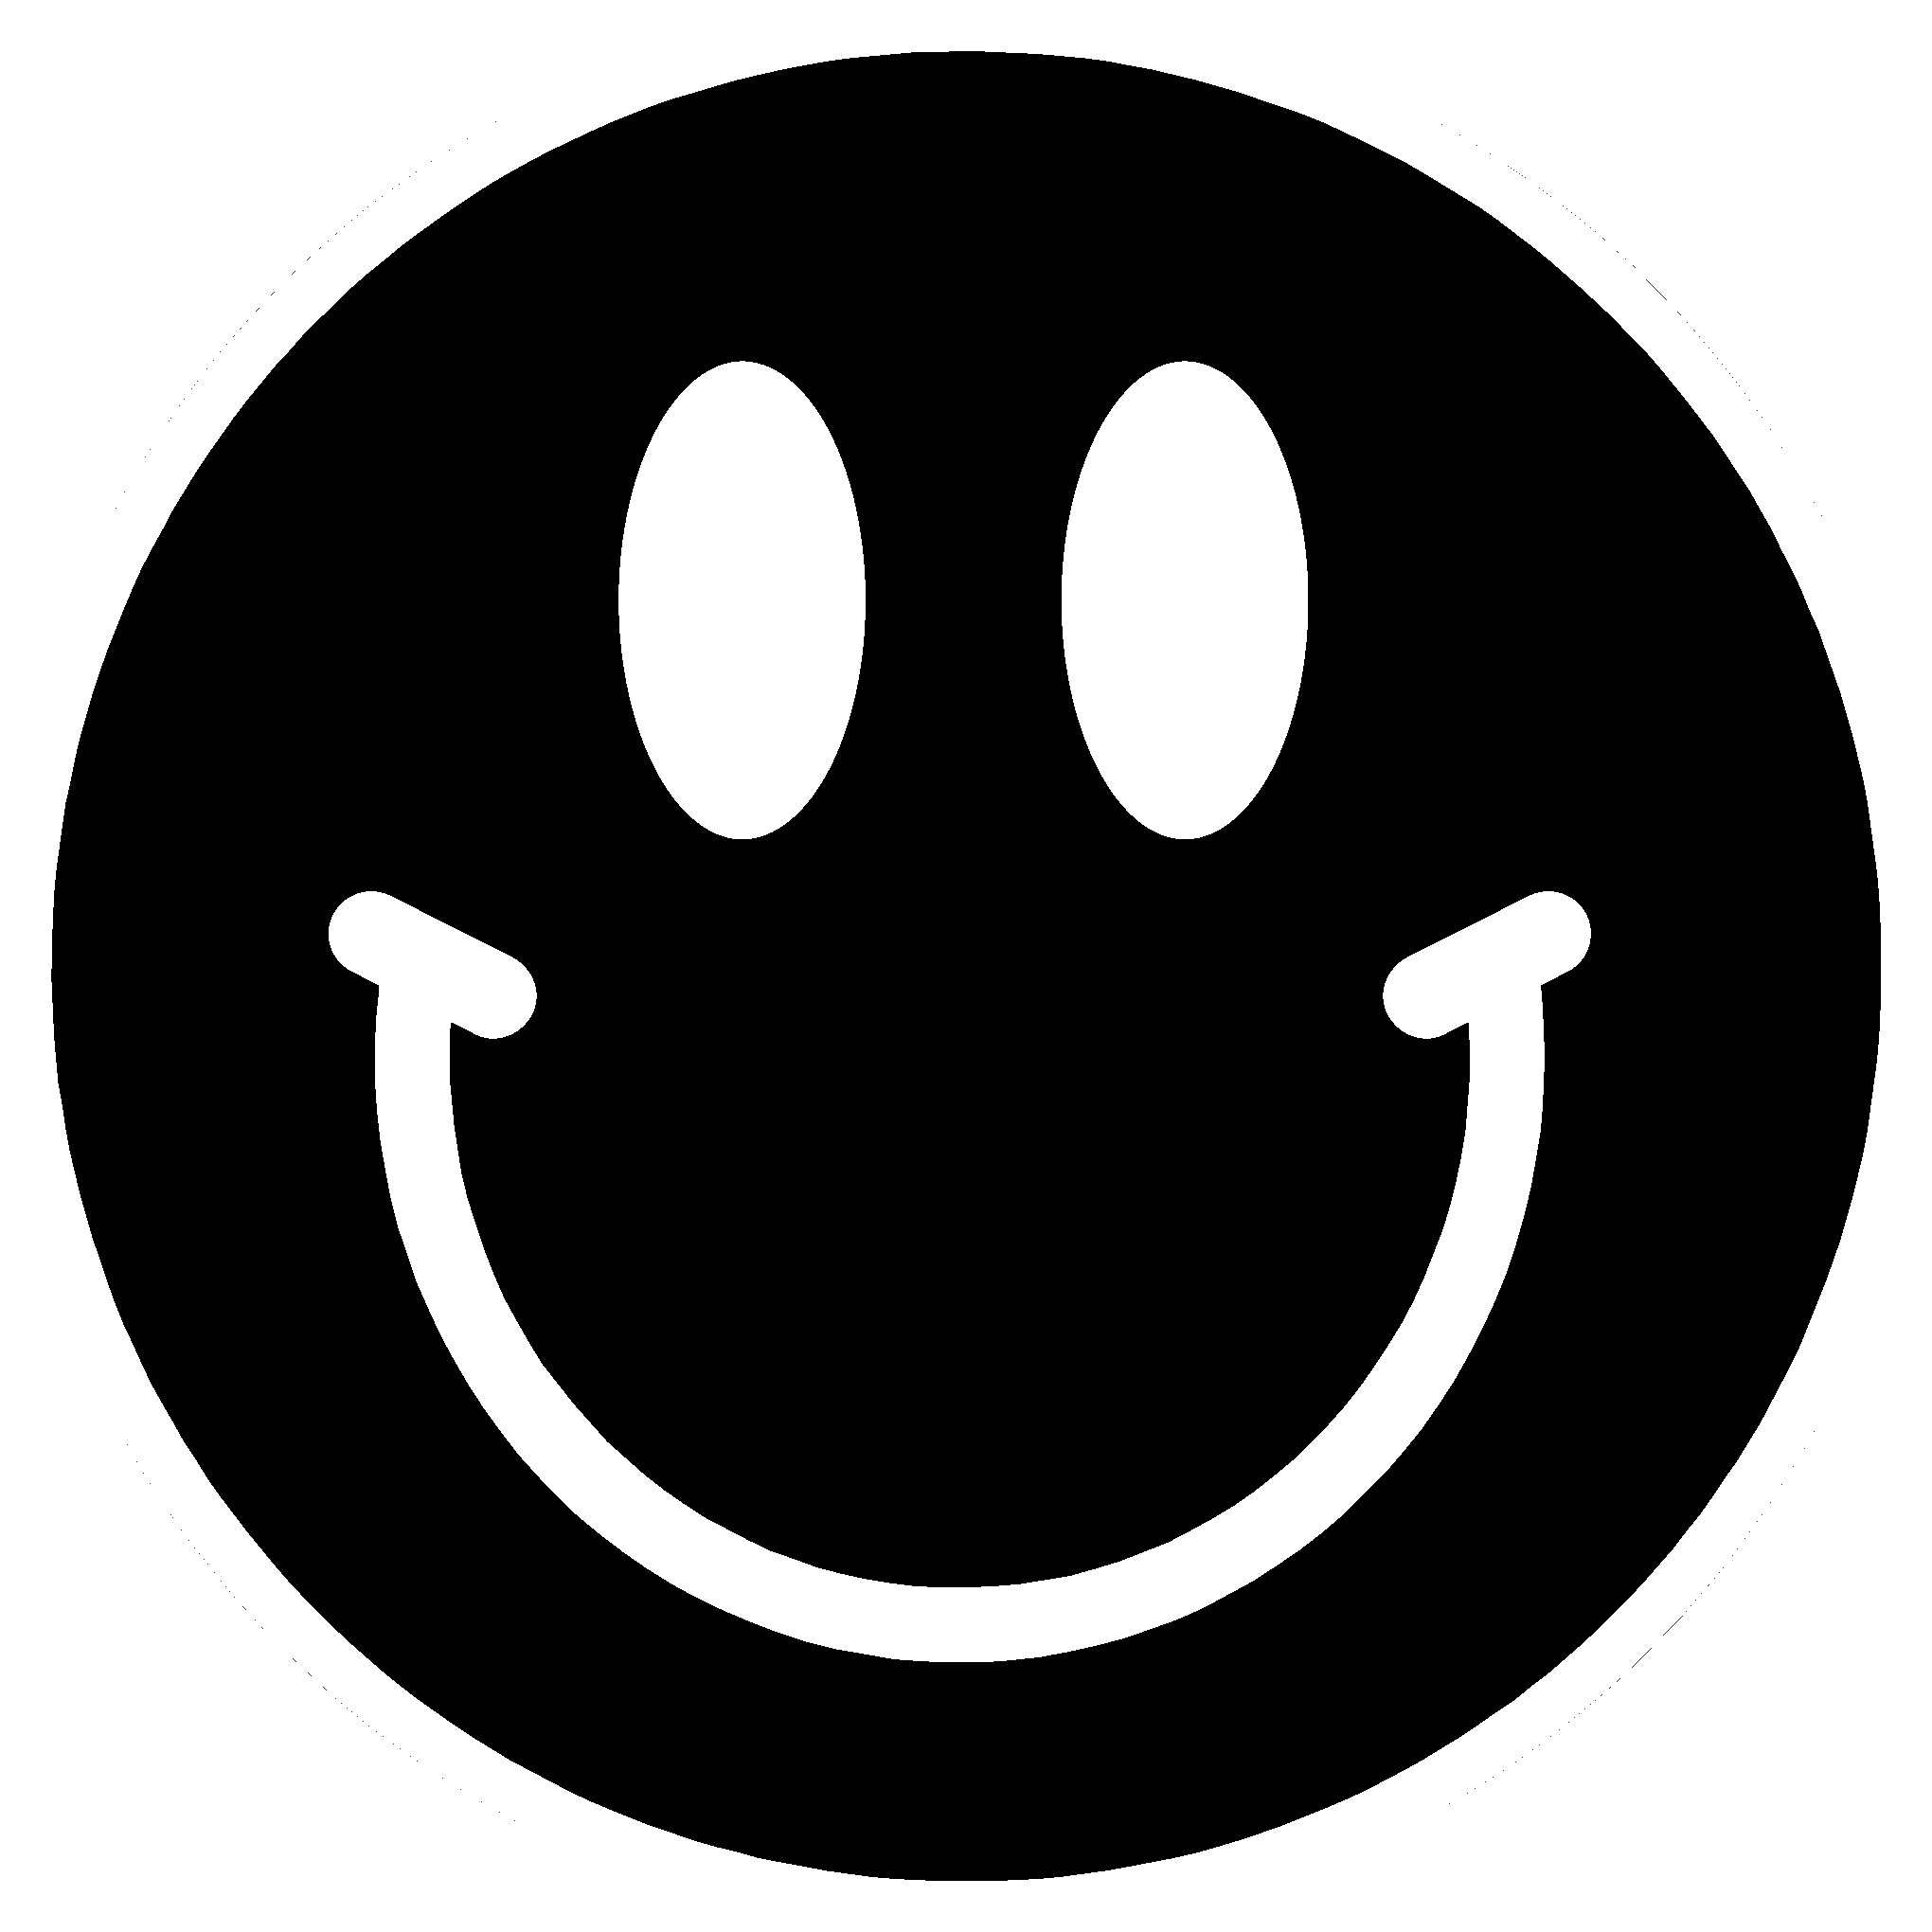 Smiley Face Black Background - ClipArt Best